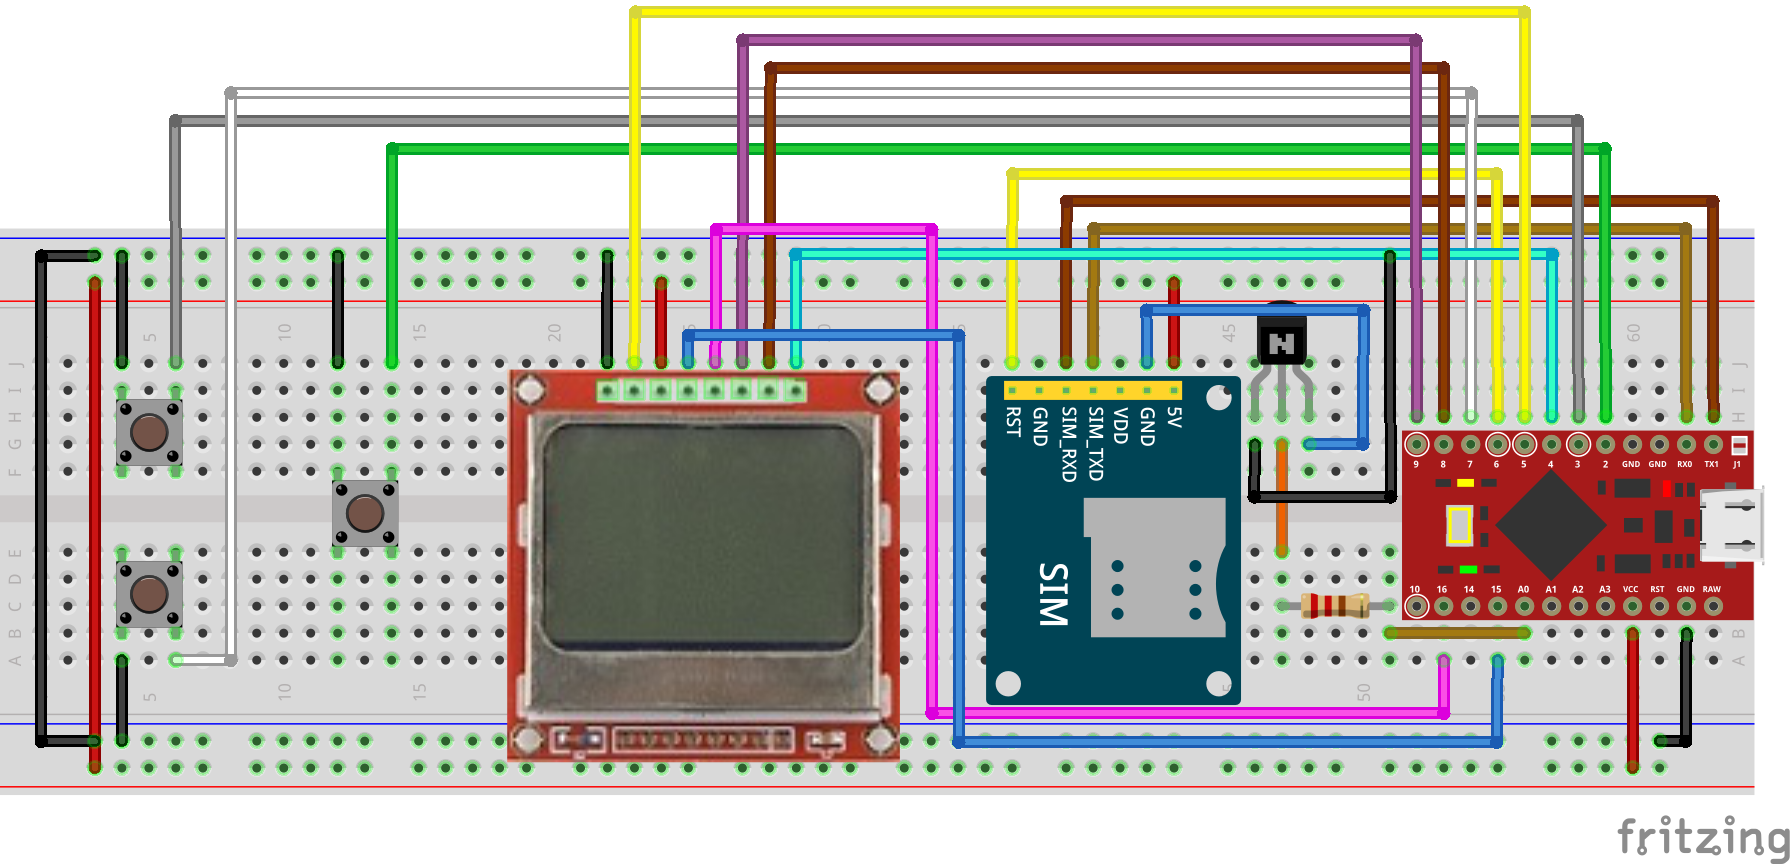 SIM800L GSM module with Nokia 5110 LCD and Arduino